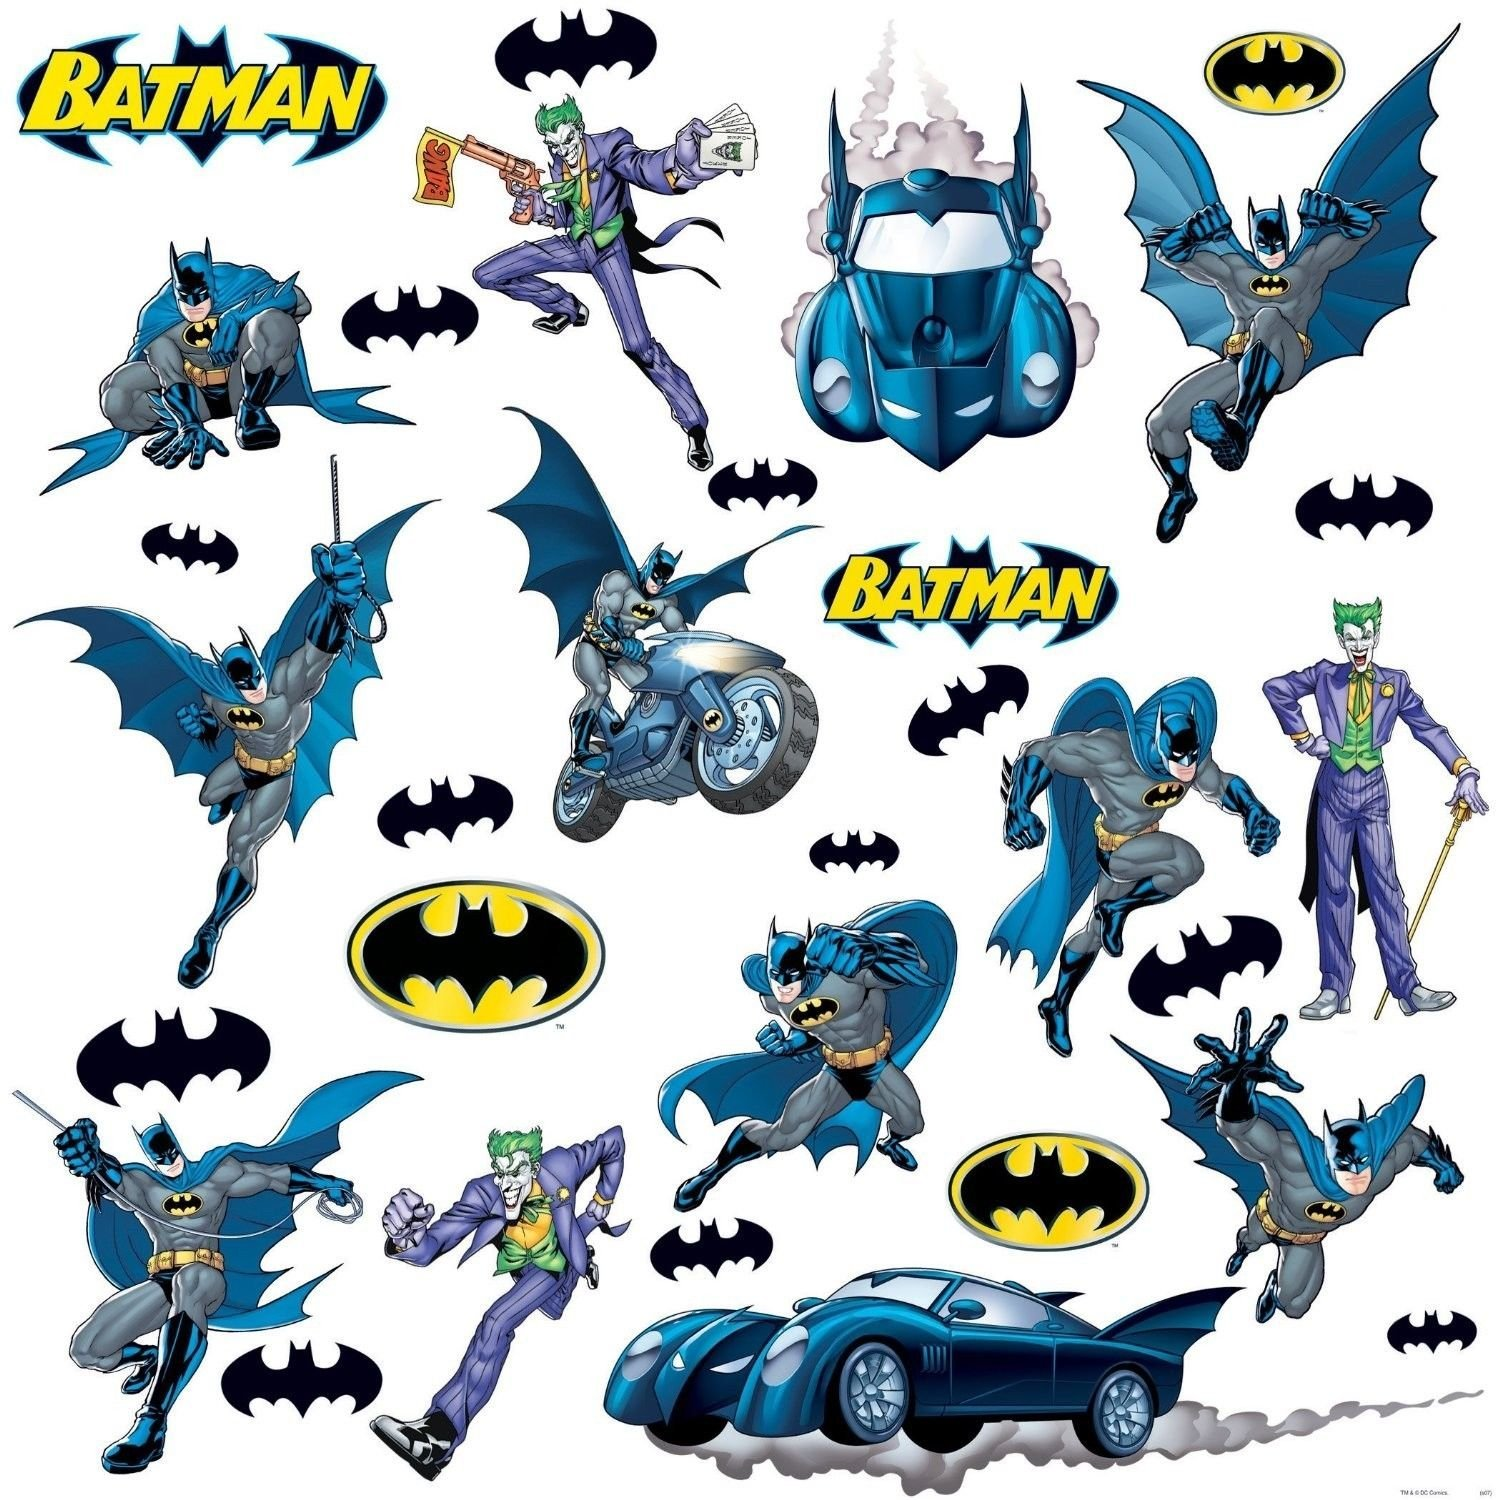 Batman Gotham 31 Big Removable Vinyl Wall Decals Batmobile Room Decor Stickers By RoomMates